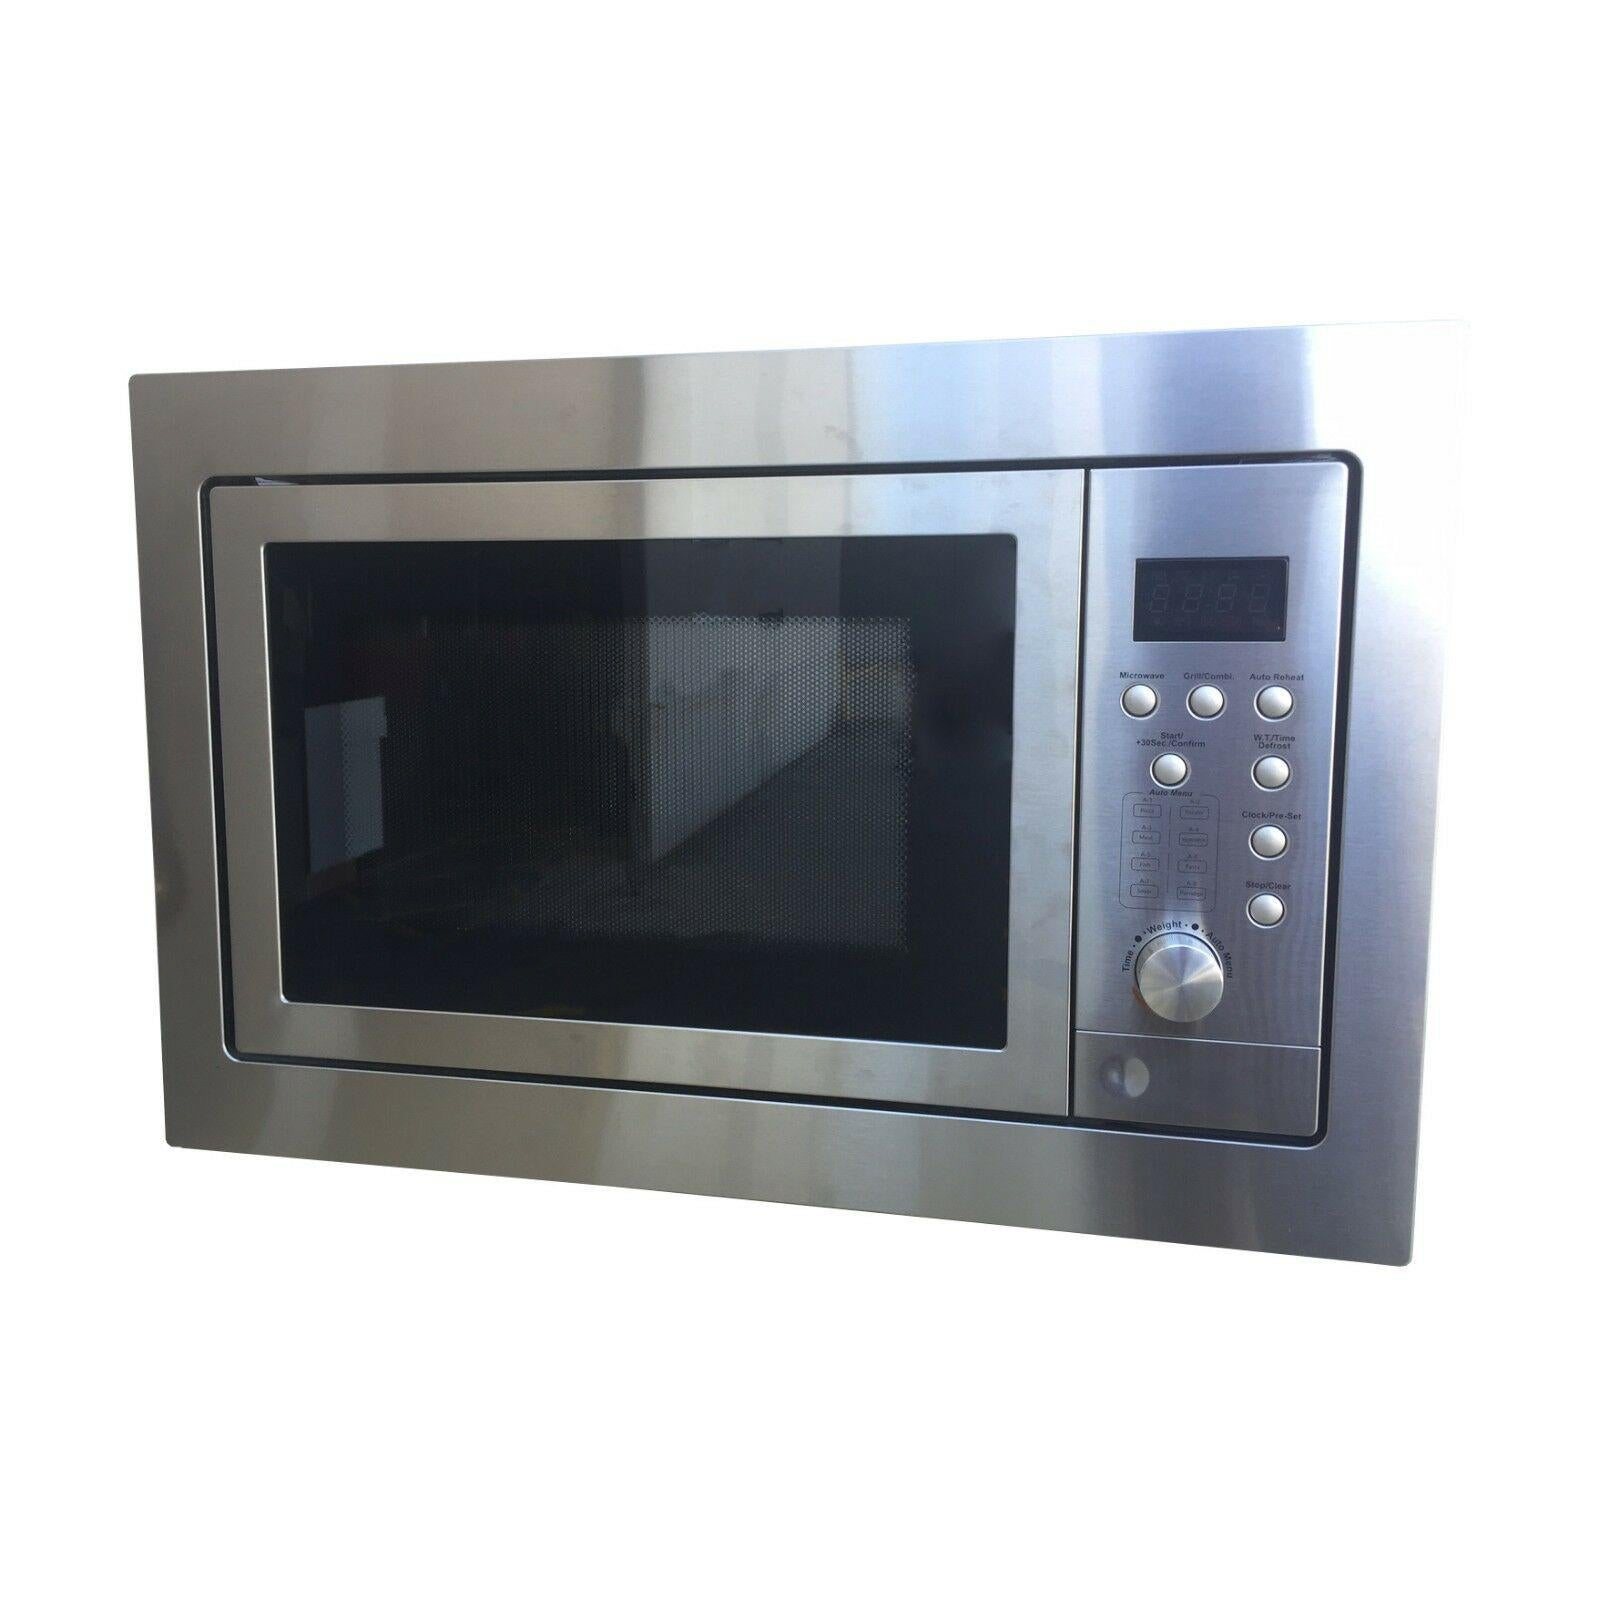 tisira 60x40cm stainless steel compact built in microwave oven grill tmw228x